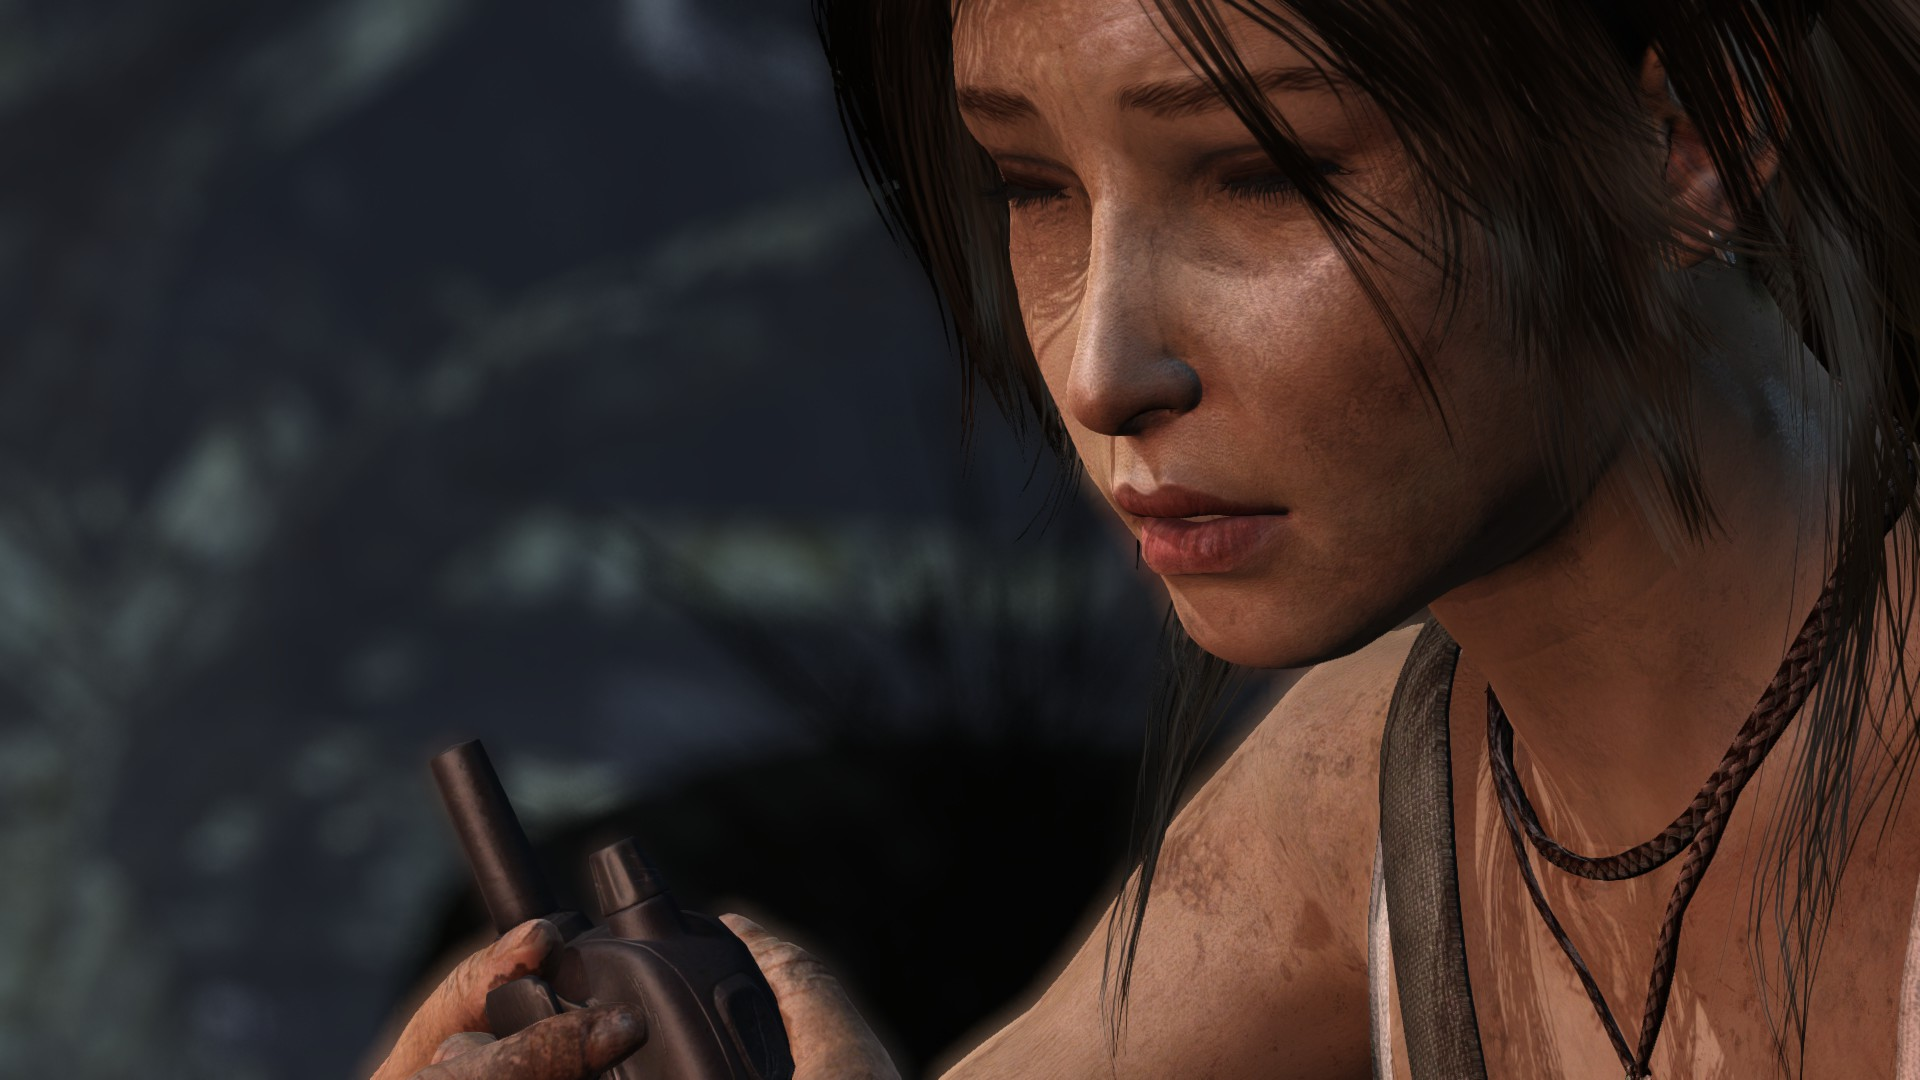 Tomb raider 13 nude mod exploited streaming